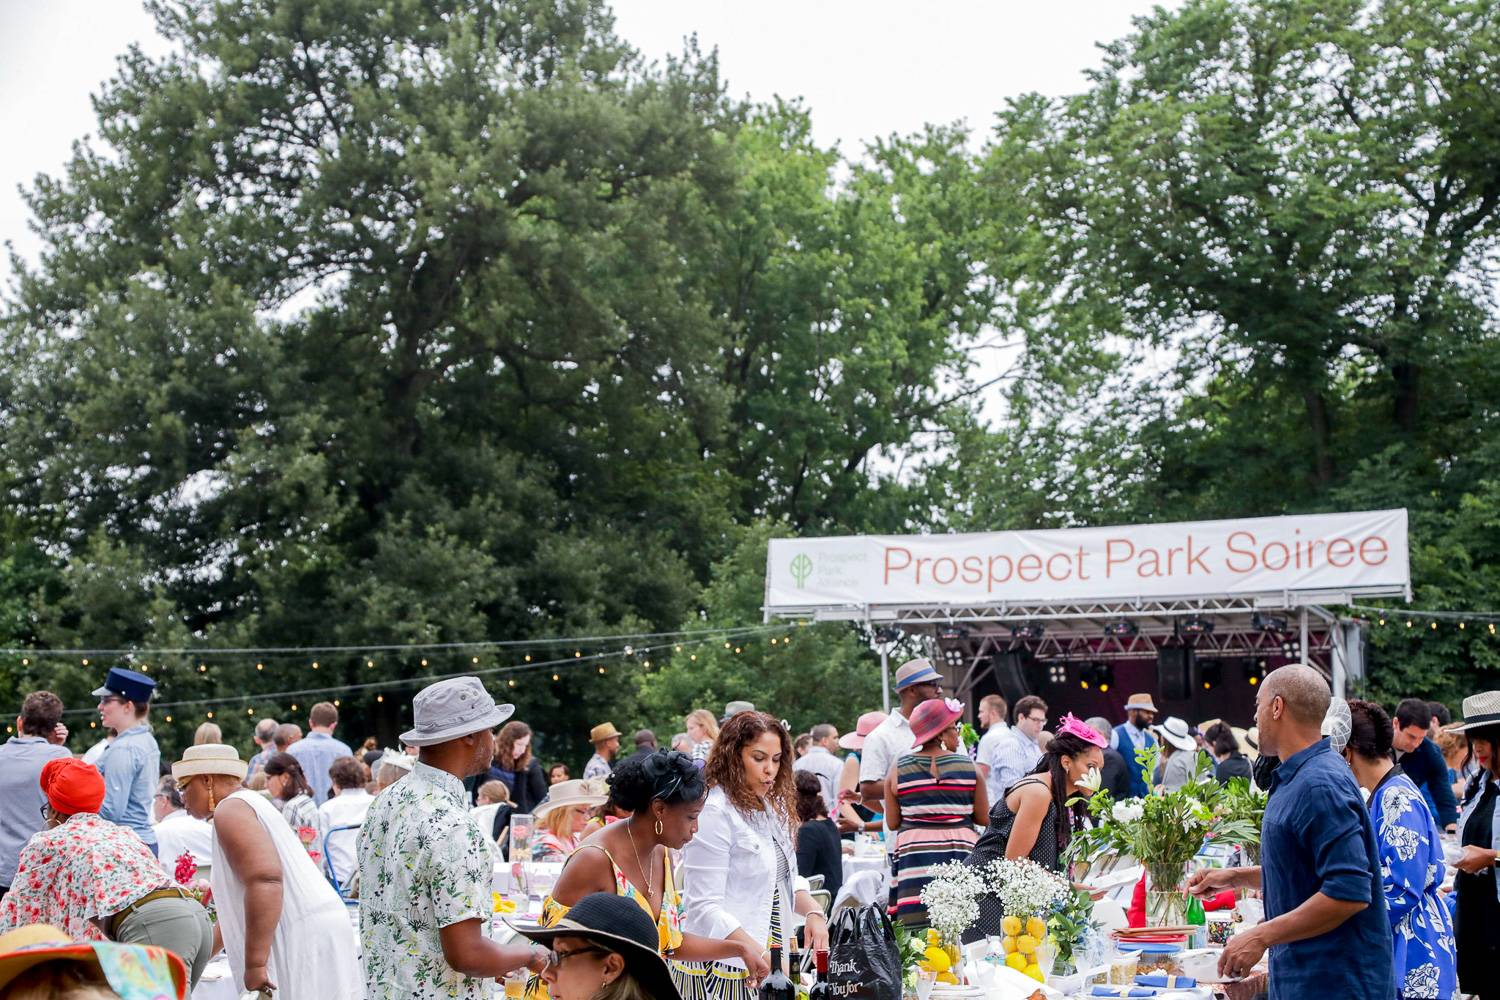 Image of guests at the Prospect Park Soiree in the summer.